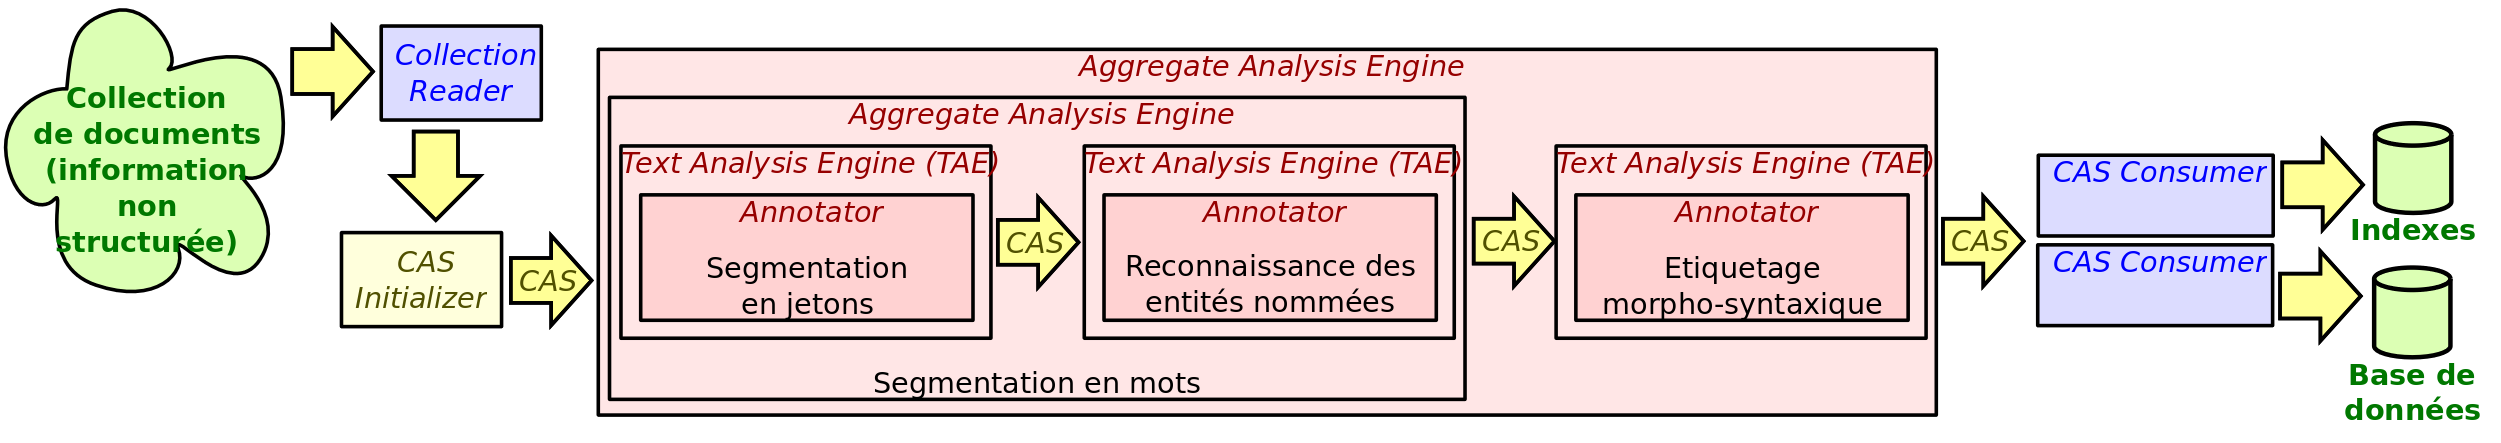 Collection Reader Contexte et problématique Common Analysis System Consumer (CAS Consumer) Collection Reader Collection Processing Engine (CPE) Utilisation de ressources d informations structurées